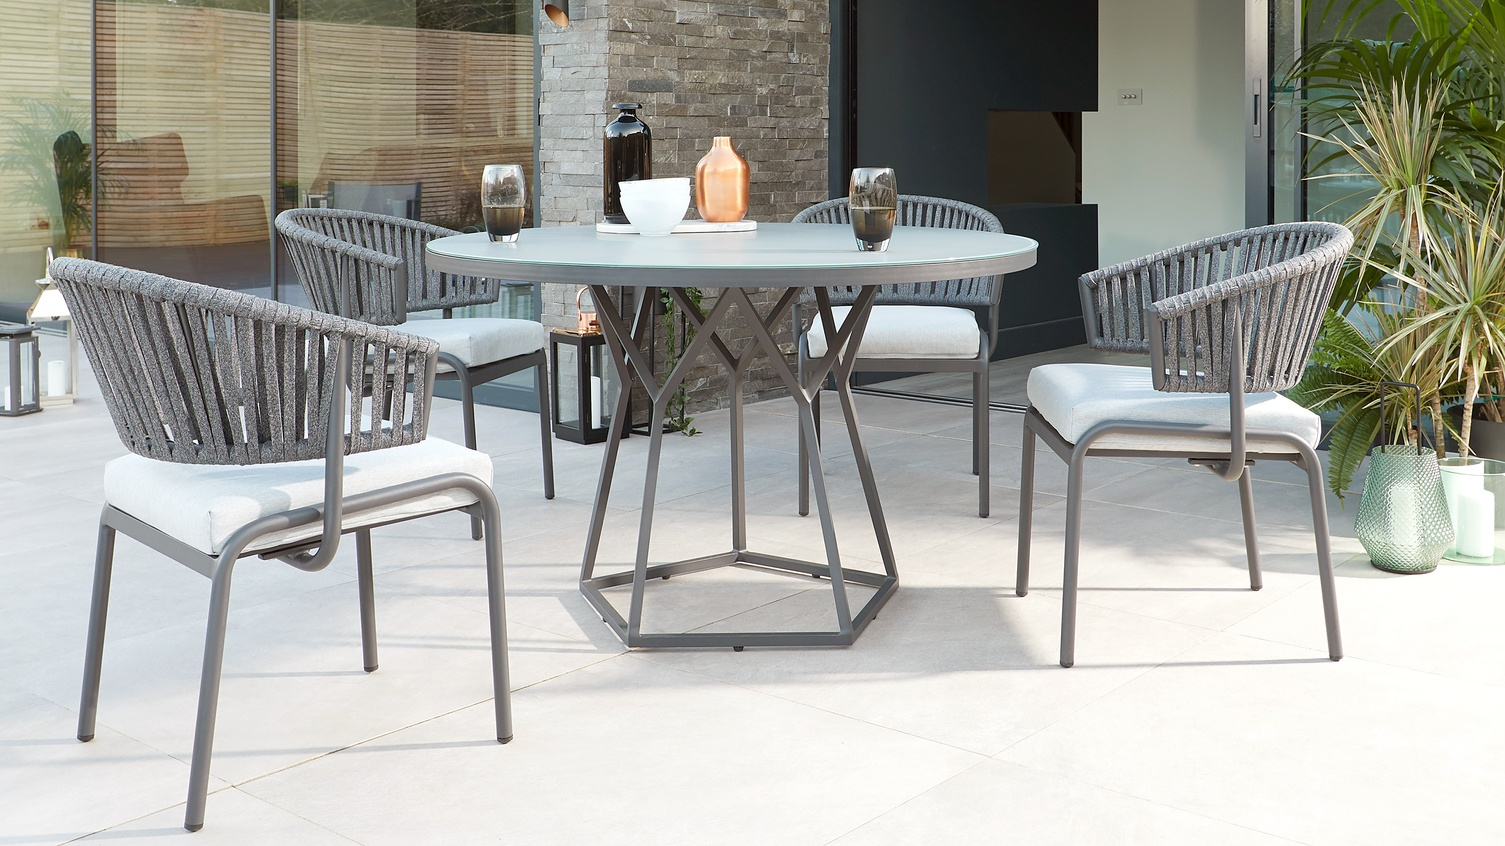 Peachy Porto Round Glass Garden Table And Ivy Chairs Danetti Uk Home Interior And Landscaping Elinuenasavecom